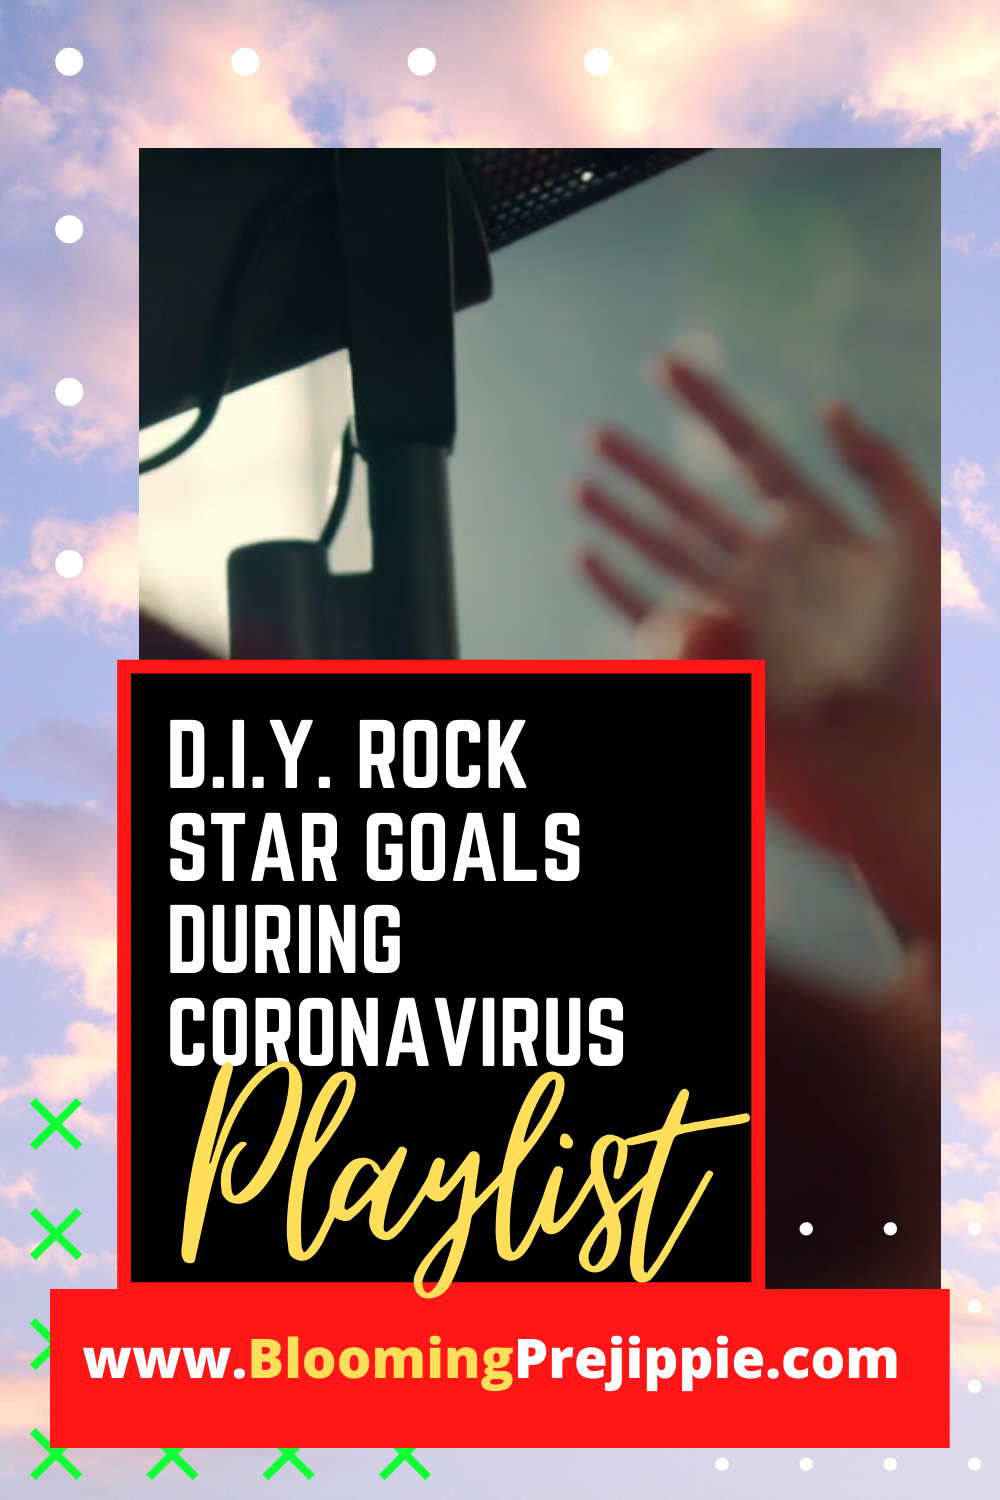 D.I.Y. Rock Star Goals During Coronavirus Playlist --Blooming Prejippie